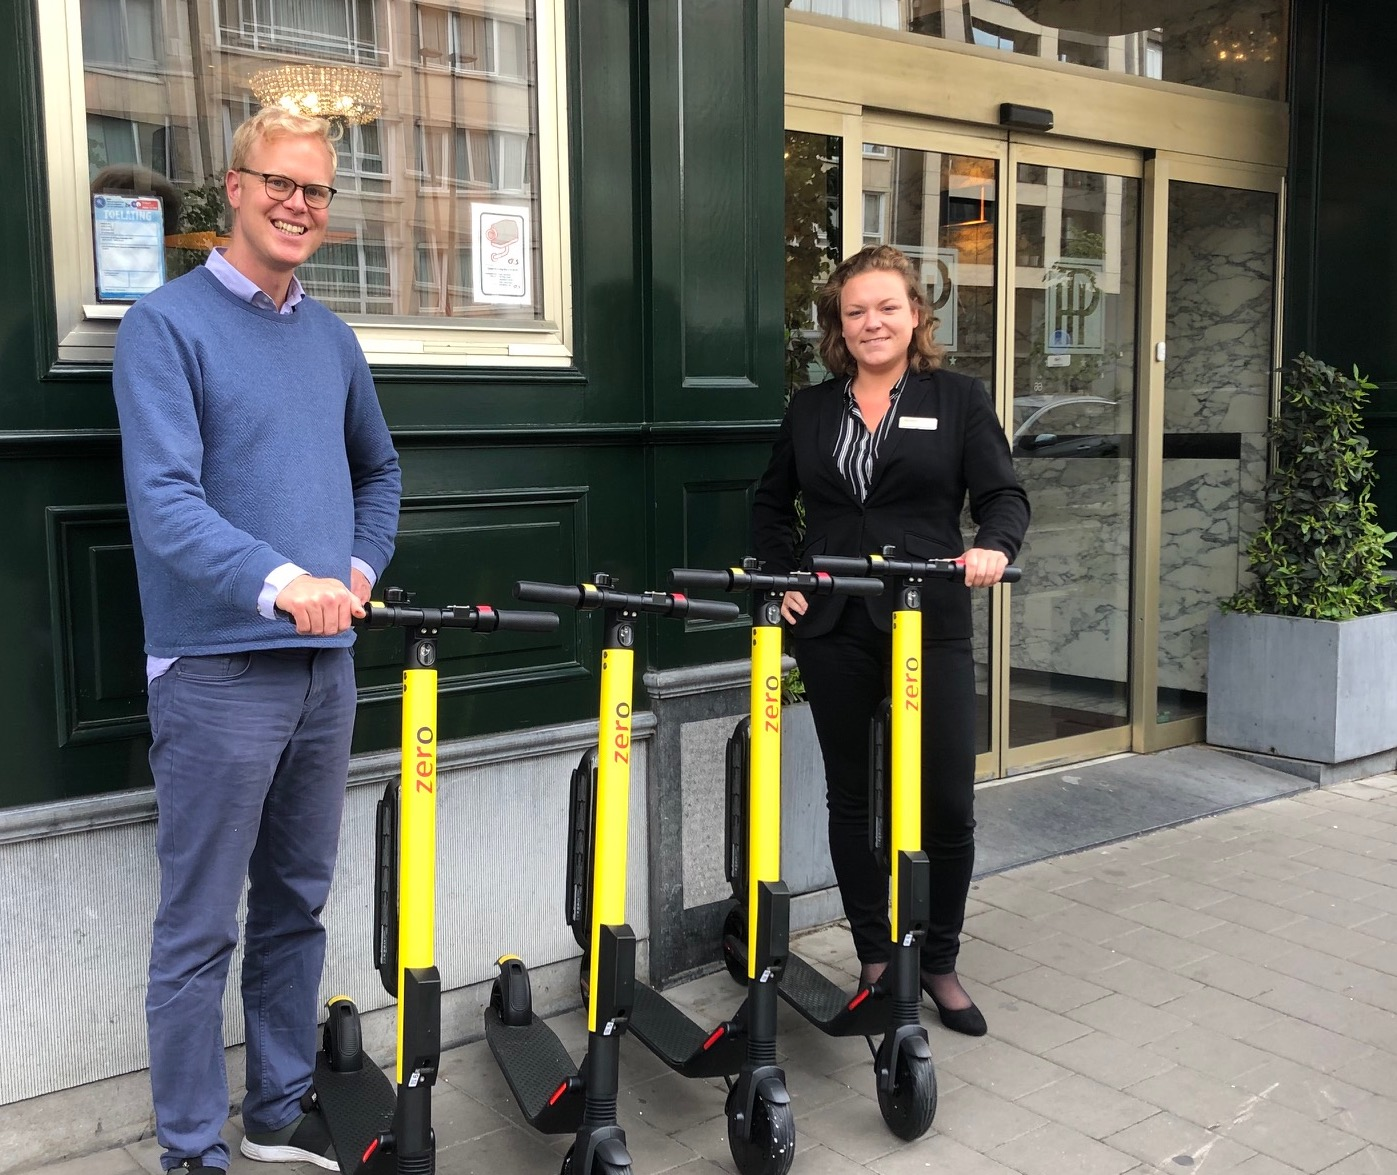 COMODULE Case Study: How Zero Mobility Found a Unique Business Model for E-Scooter Sharing